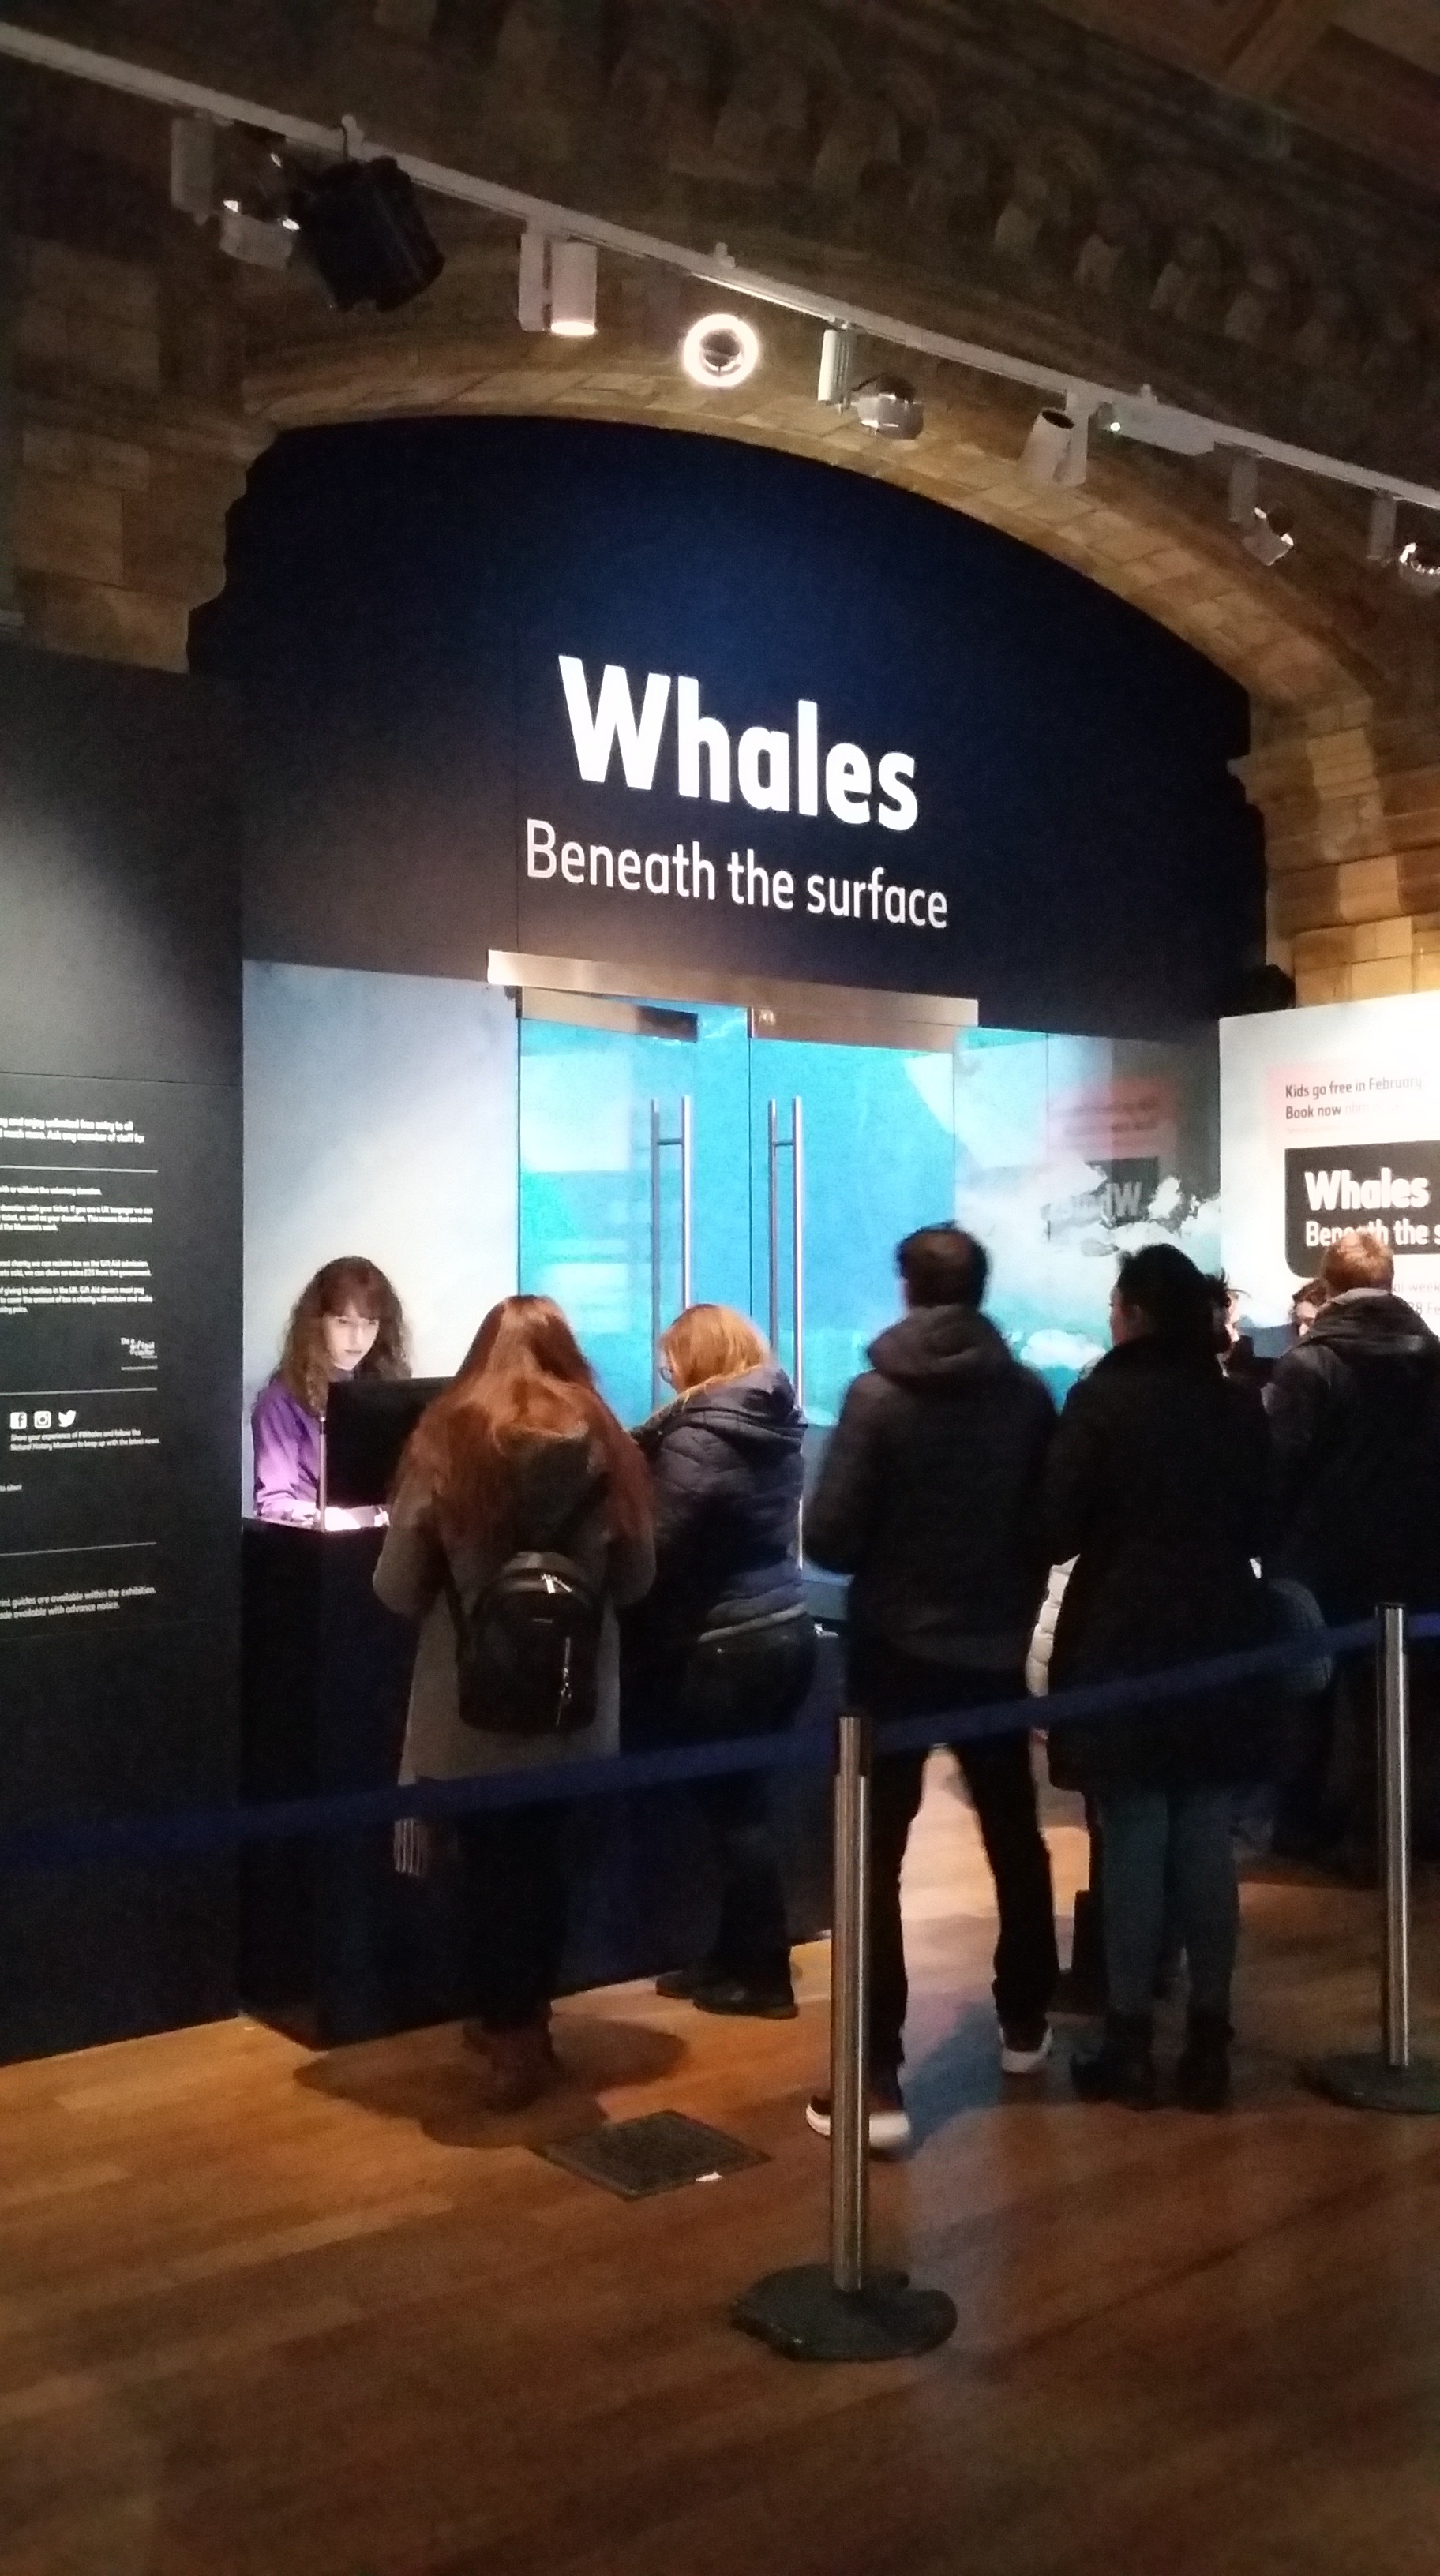 Whales exhibition